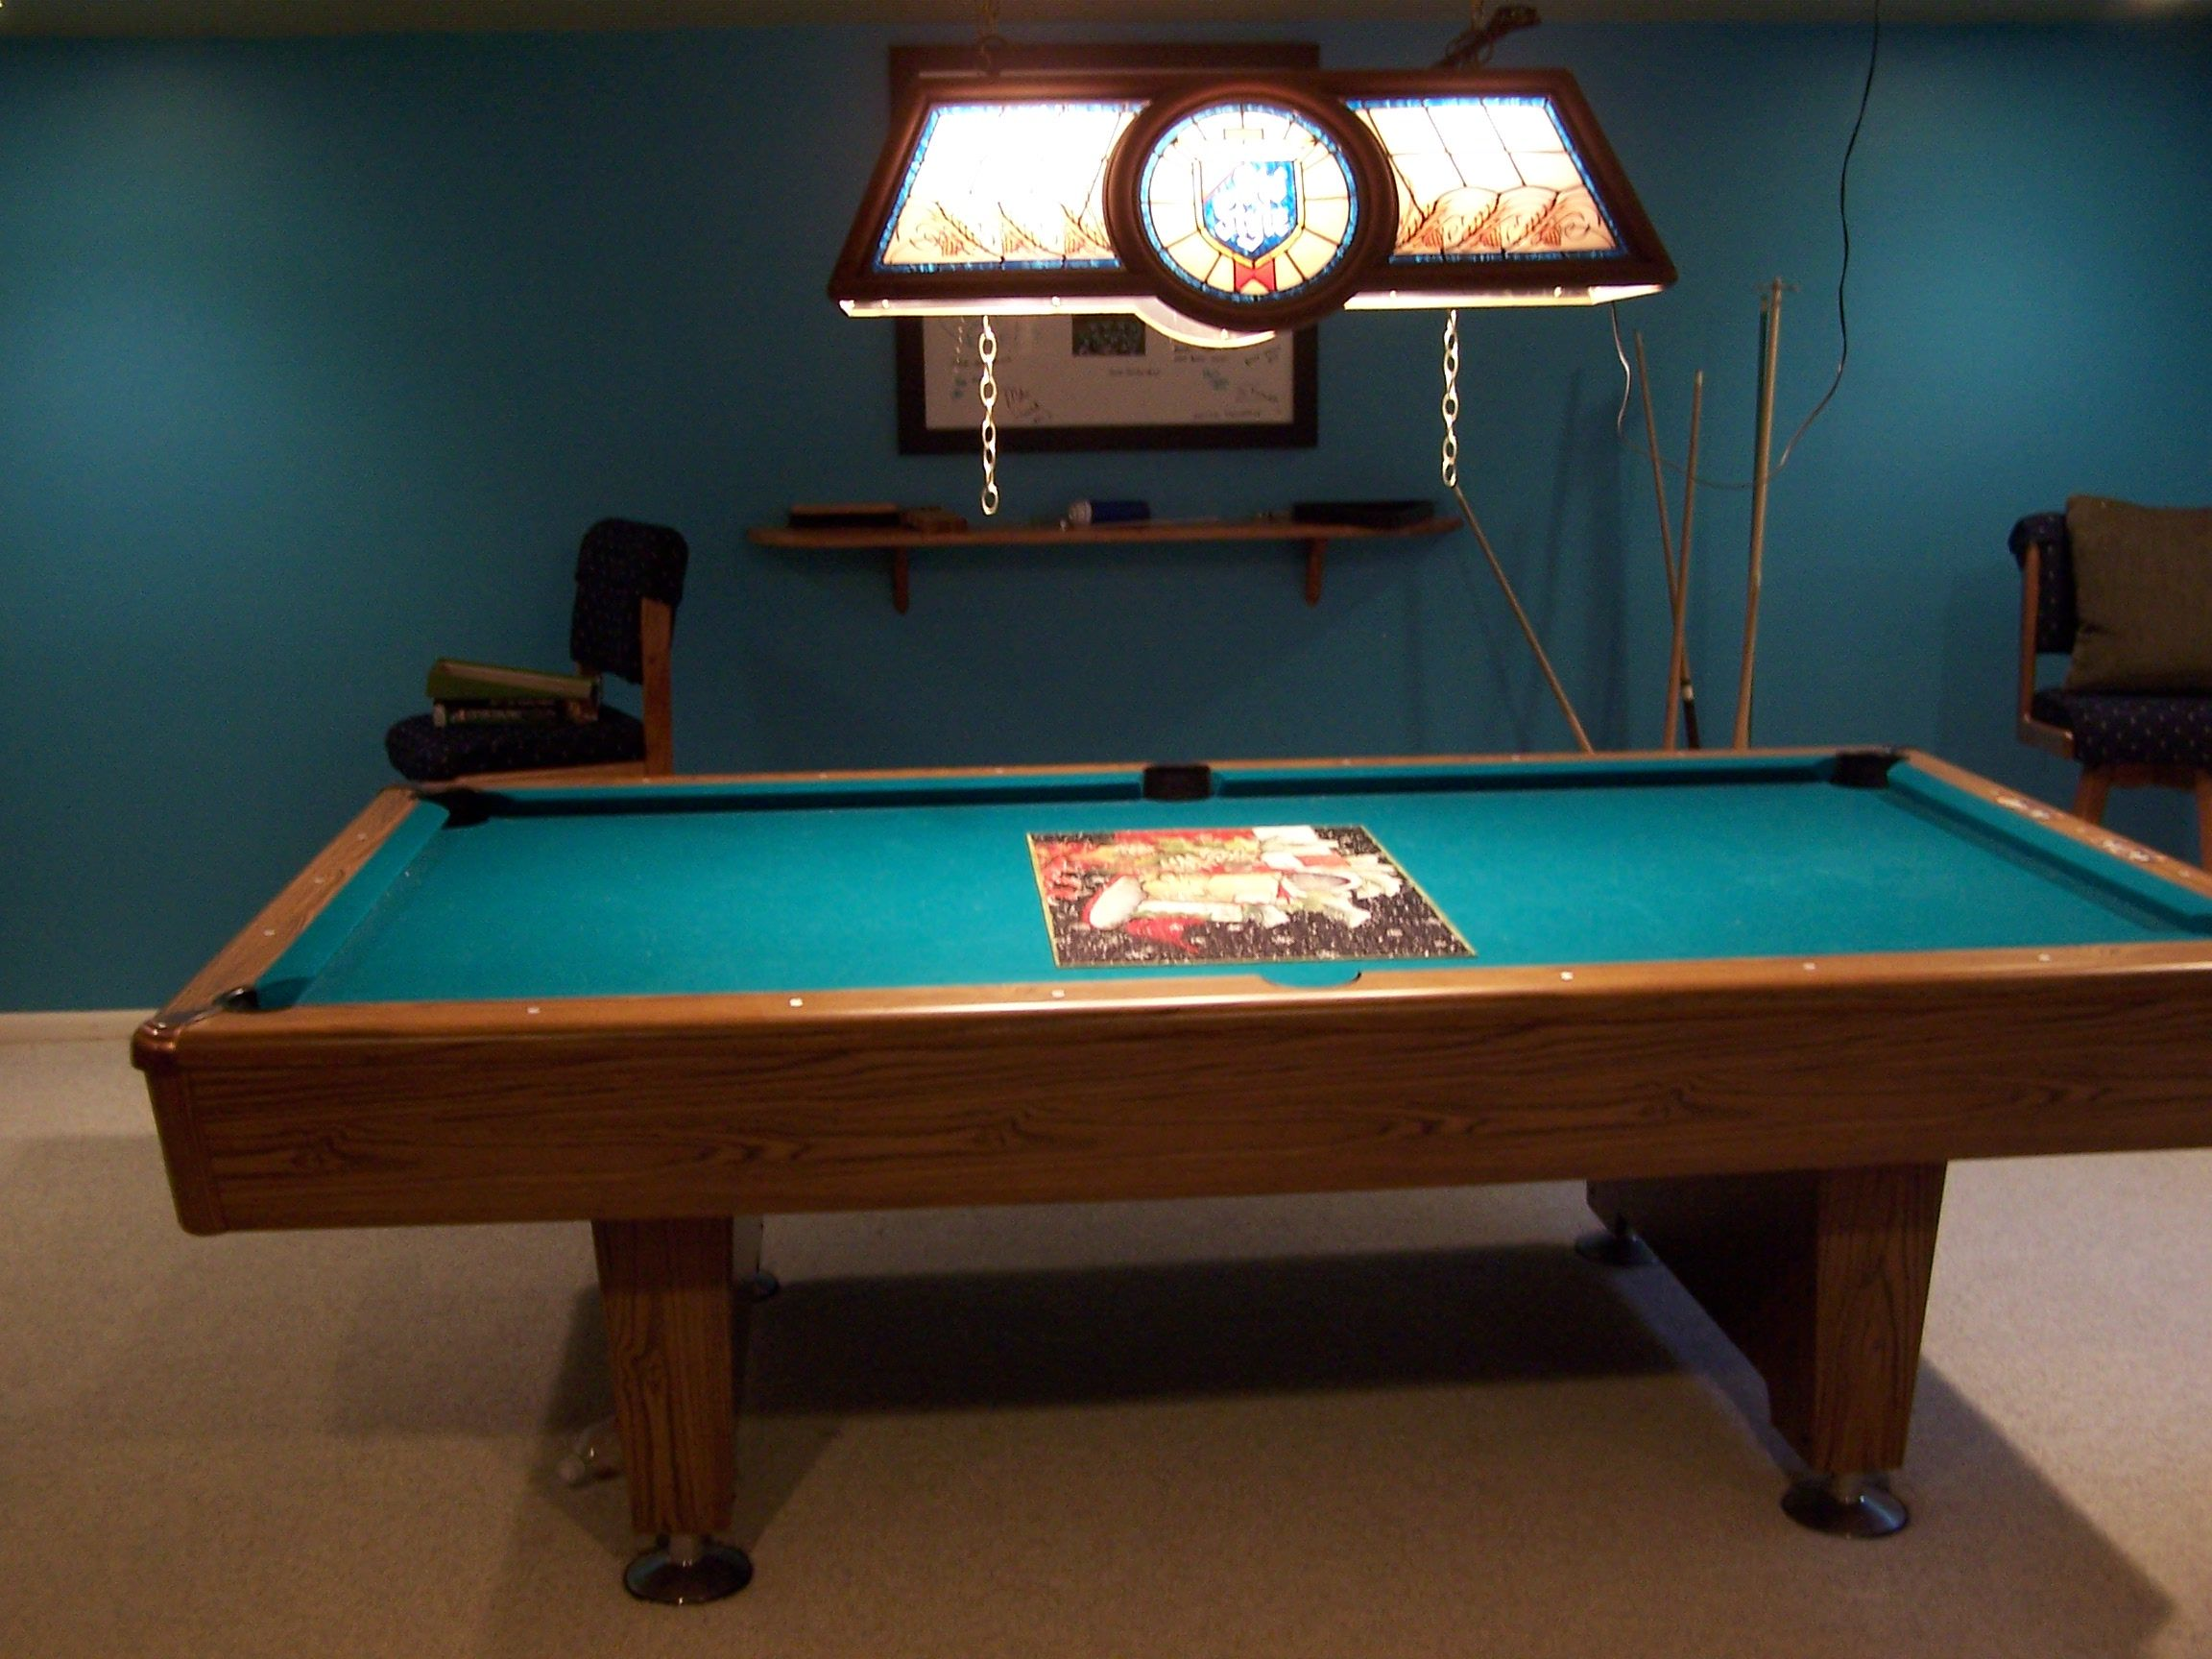 Pool Table Chicago | New Used Billiard Pool Tables Mover Refelt Recushion  Install Crating Buy Sell Pool Tables Chicago Illinois Il